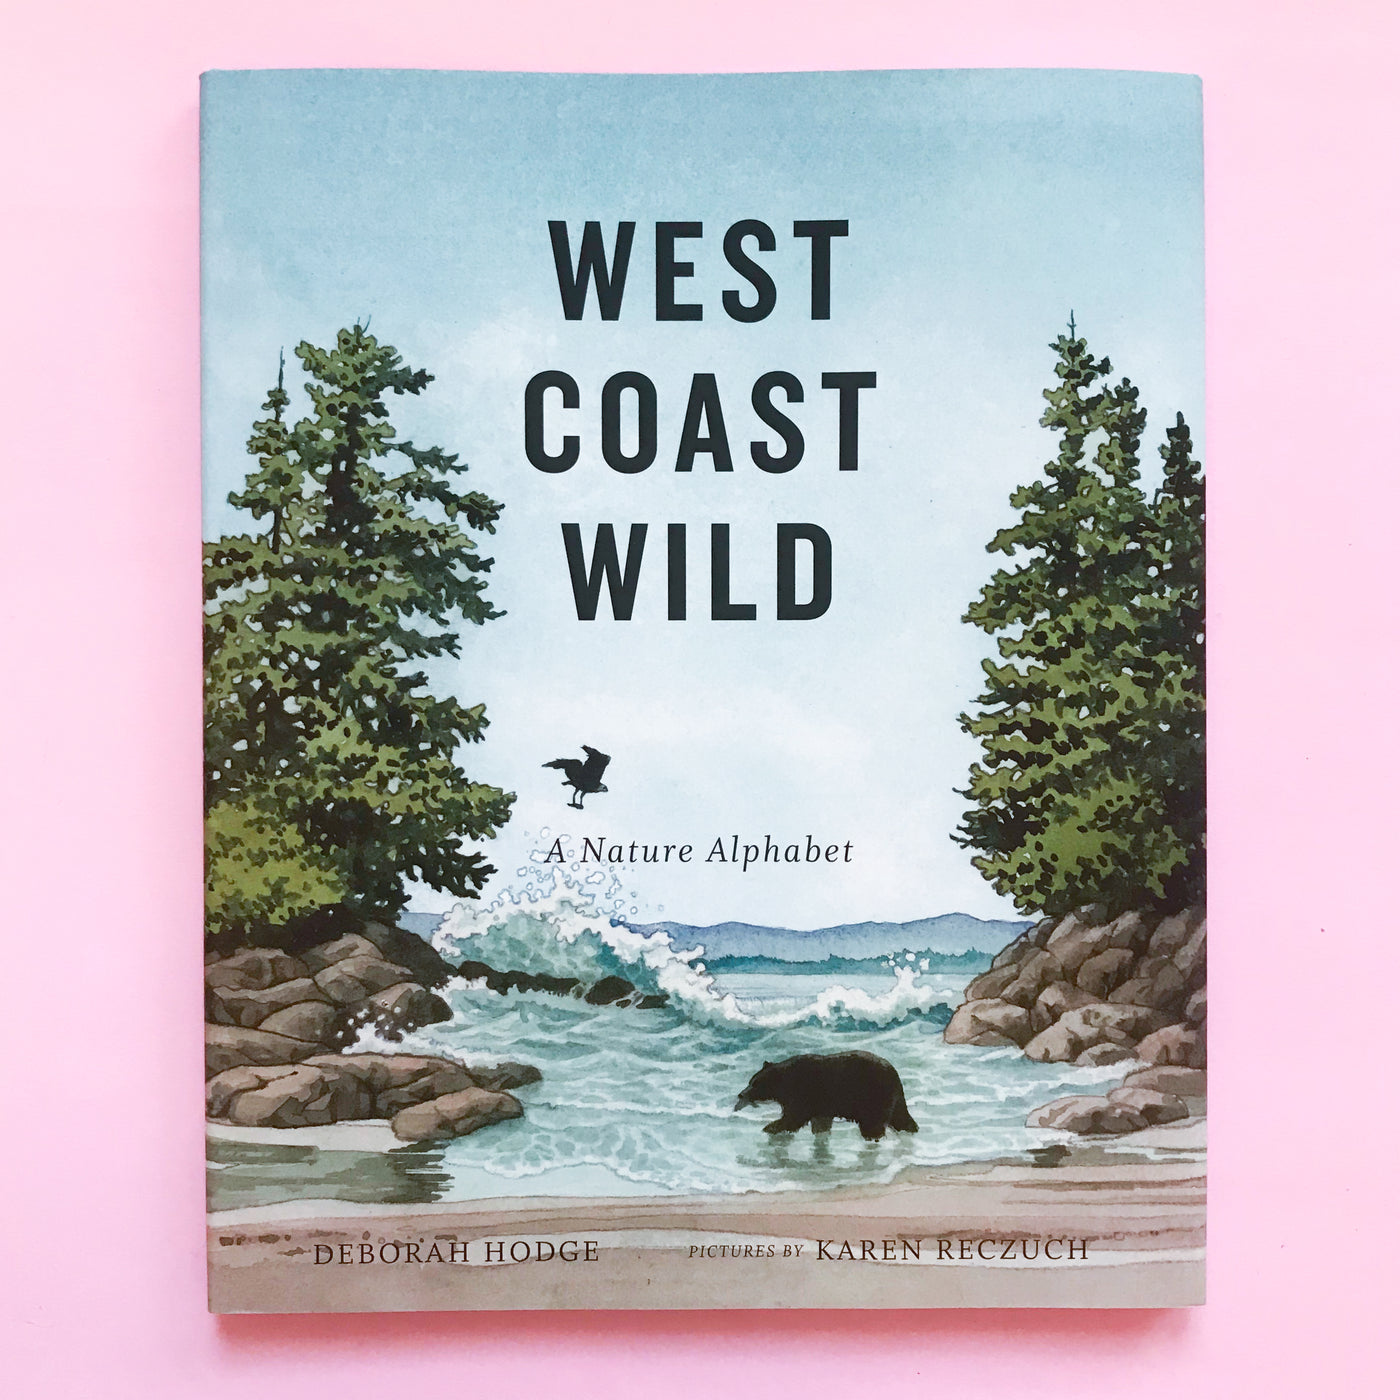 West Coast Wild: A Nature Alphabet by Deborah Hodge